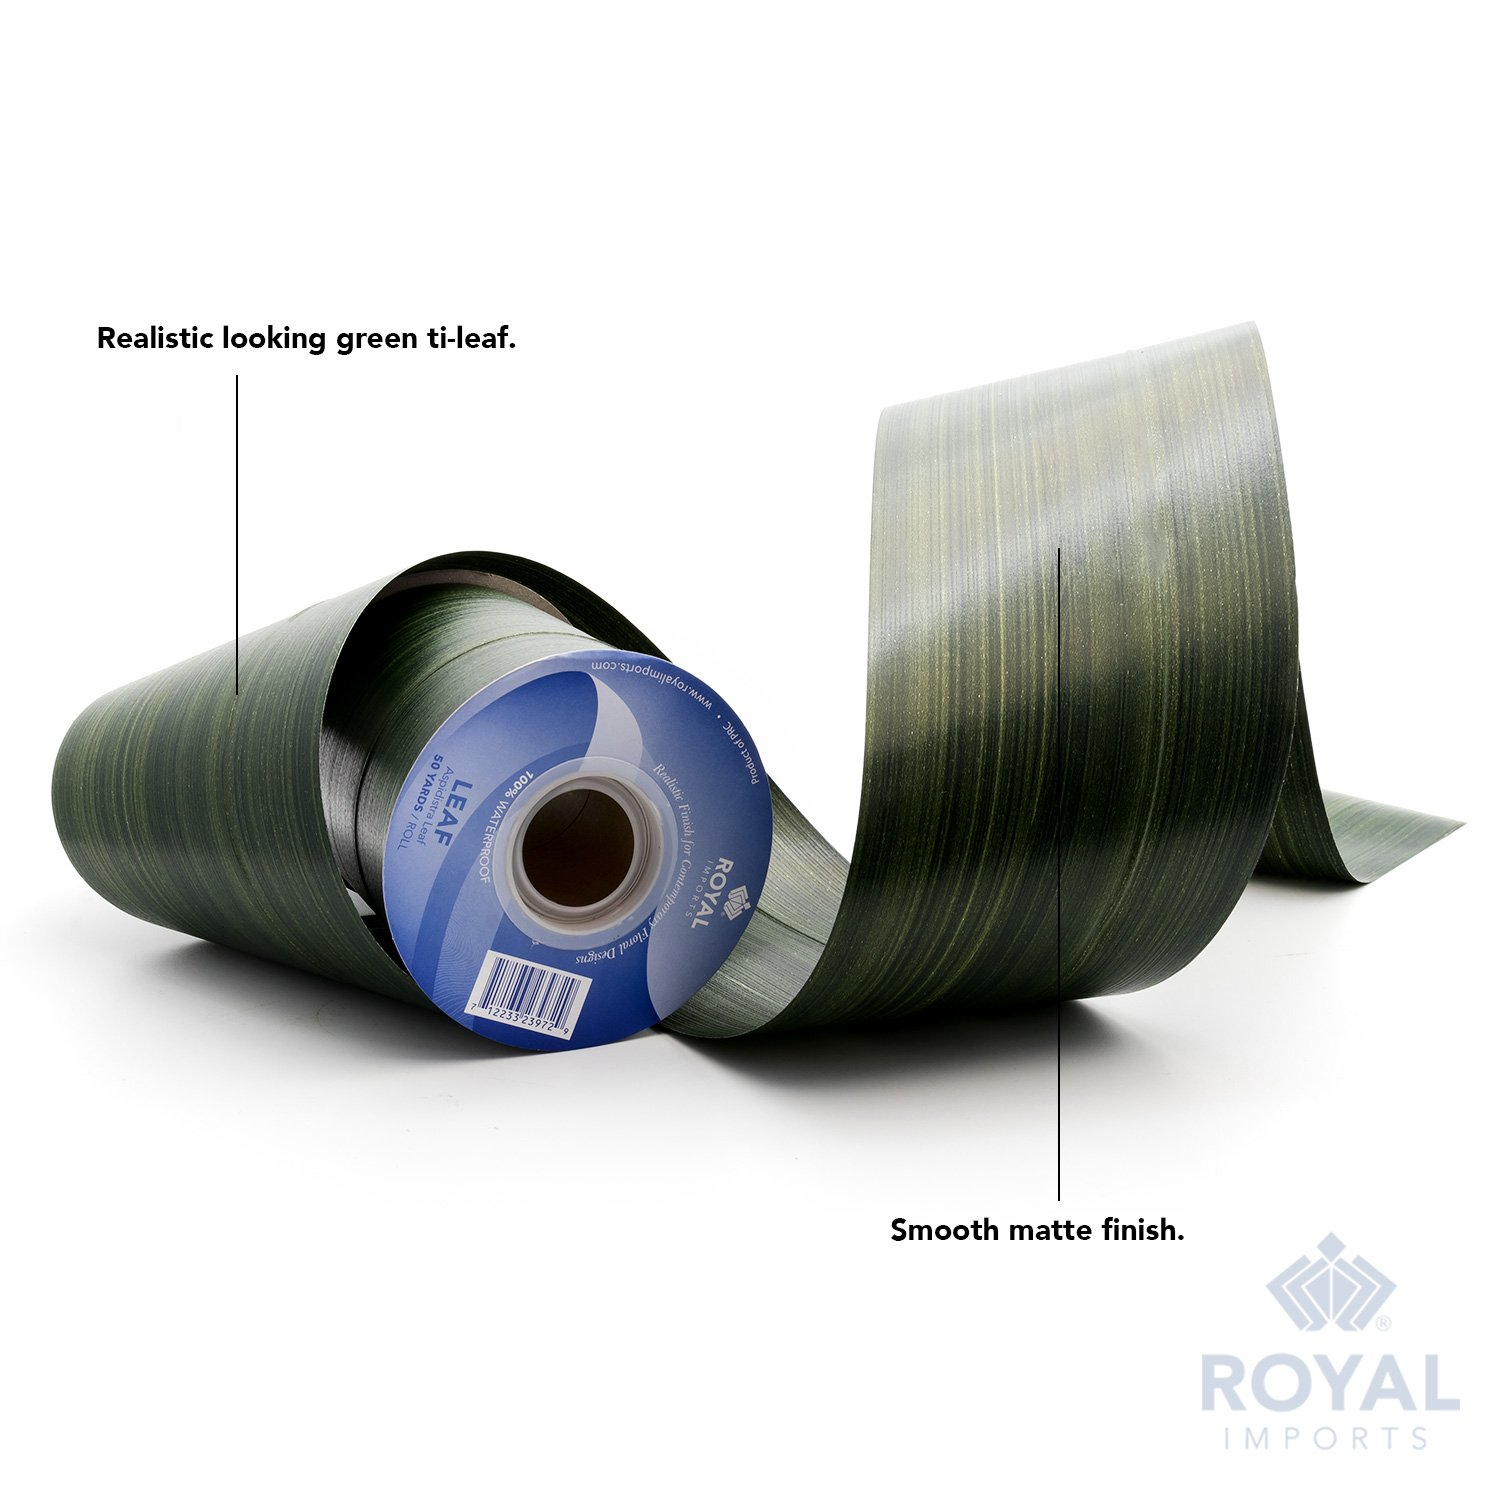 Green Aspidistra Ti Leaf Pattern Poly Satin Waterproof Ribbon 4'' (#100) Floral & Craft Decoration, 50 Yard Roll (150 FT Spool) Bulk, by Royal Imports by Royal Imports (Image #4)